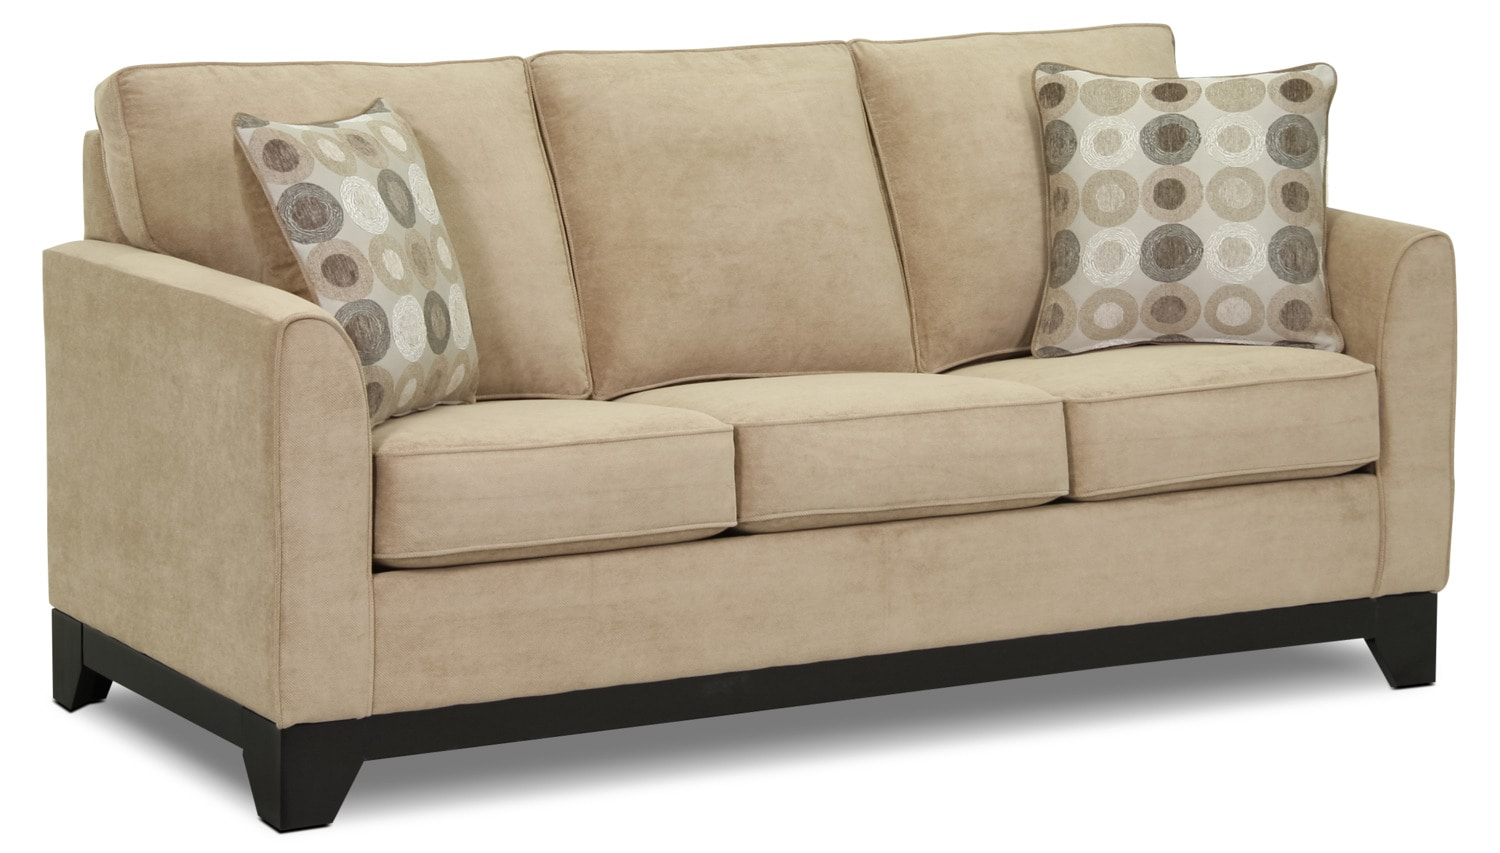 Griffin Full Sofabed - Beige